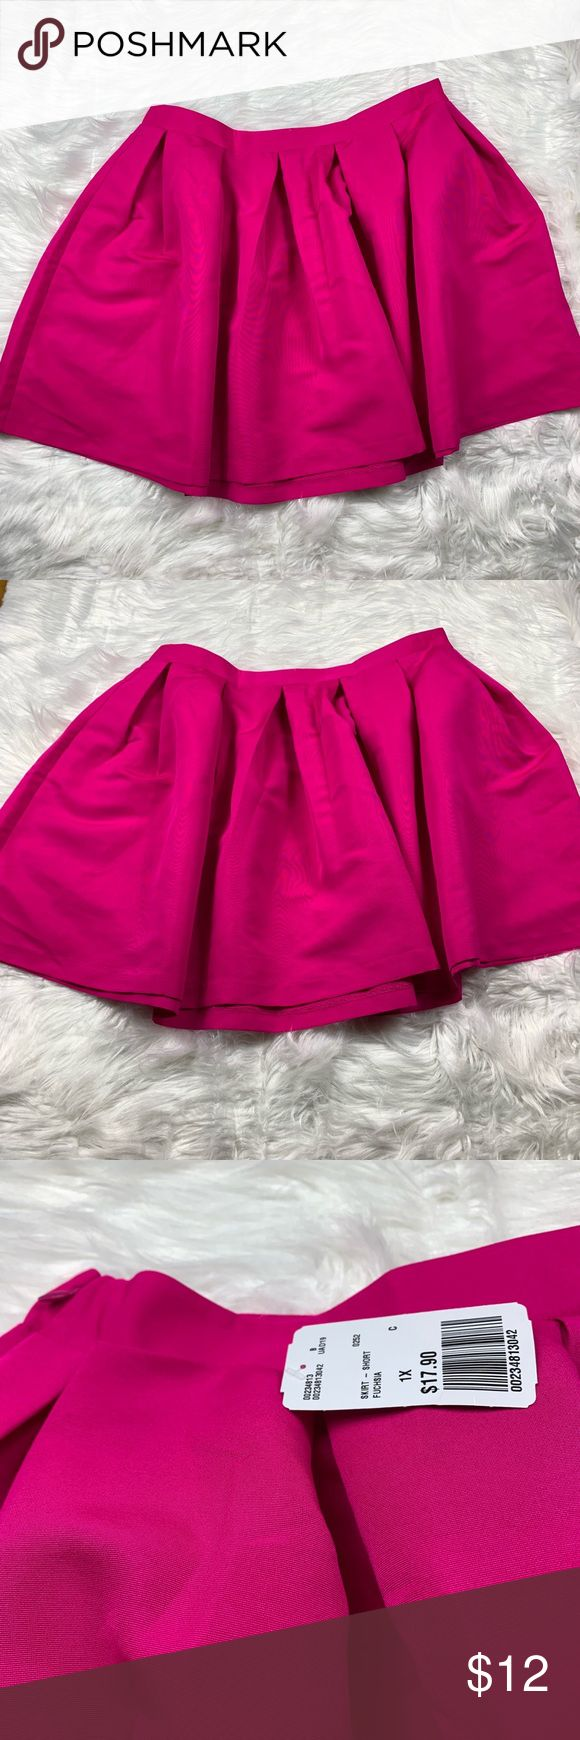 Hot Pink Pleated Skater Skirt (NWT) This fun and flirty ...